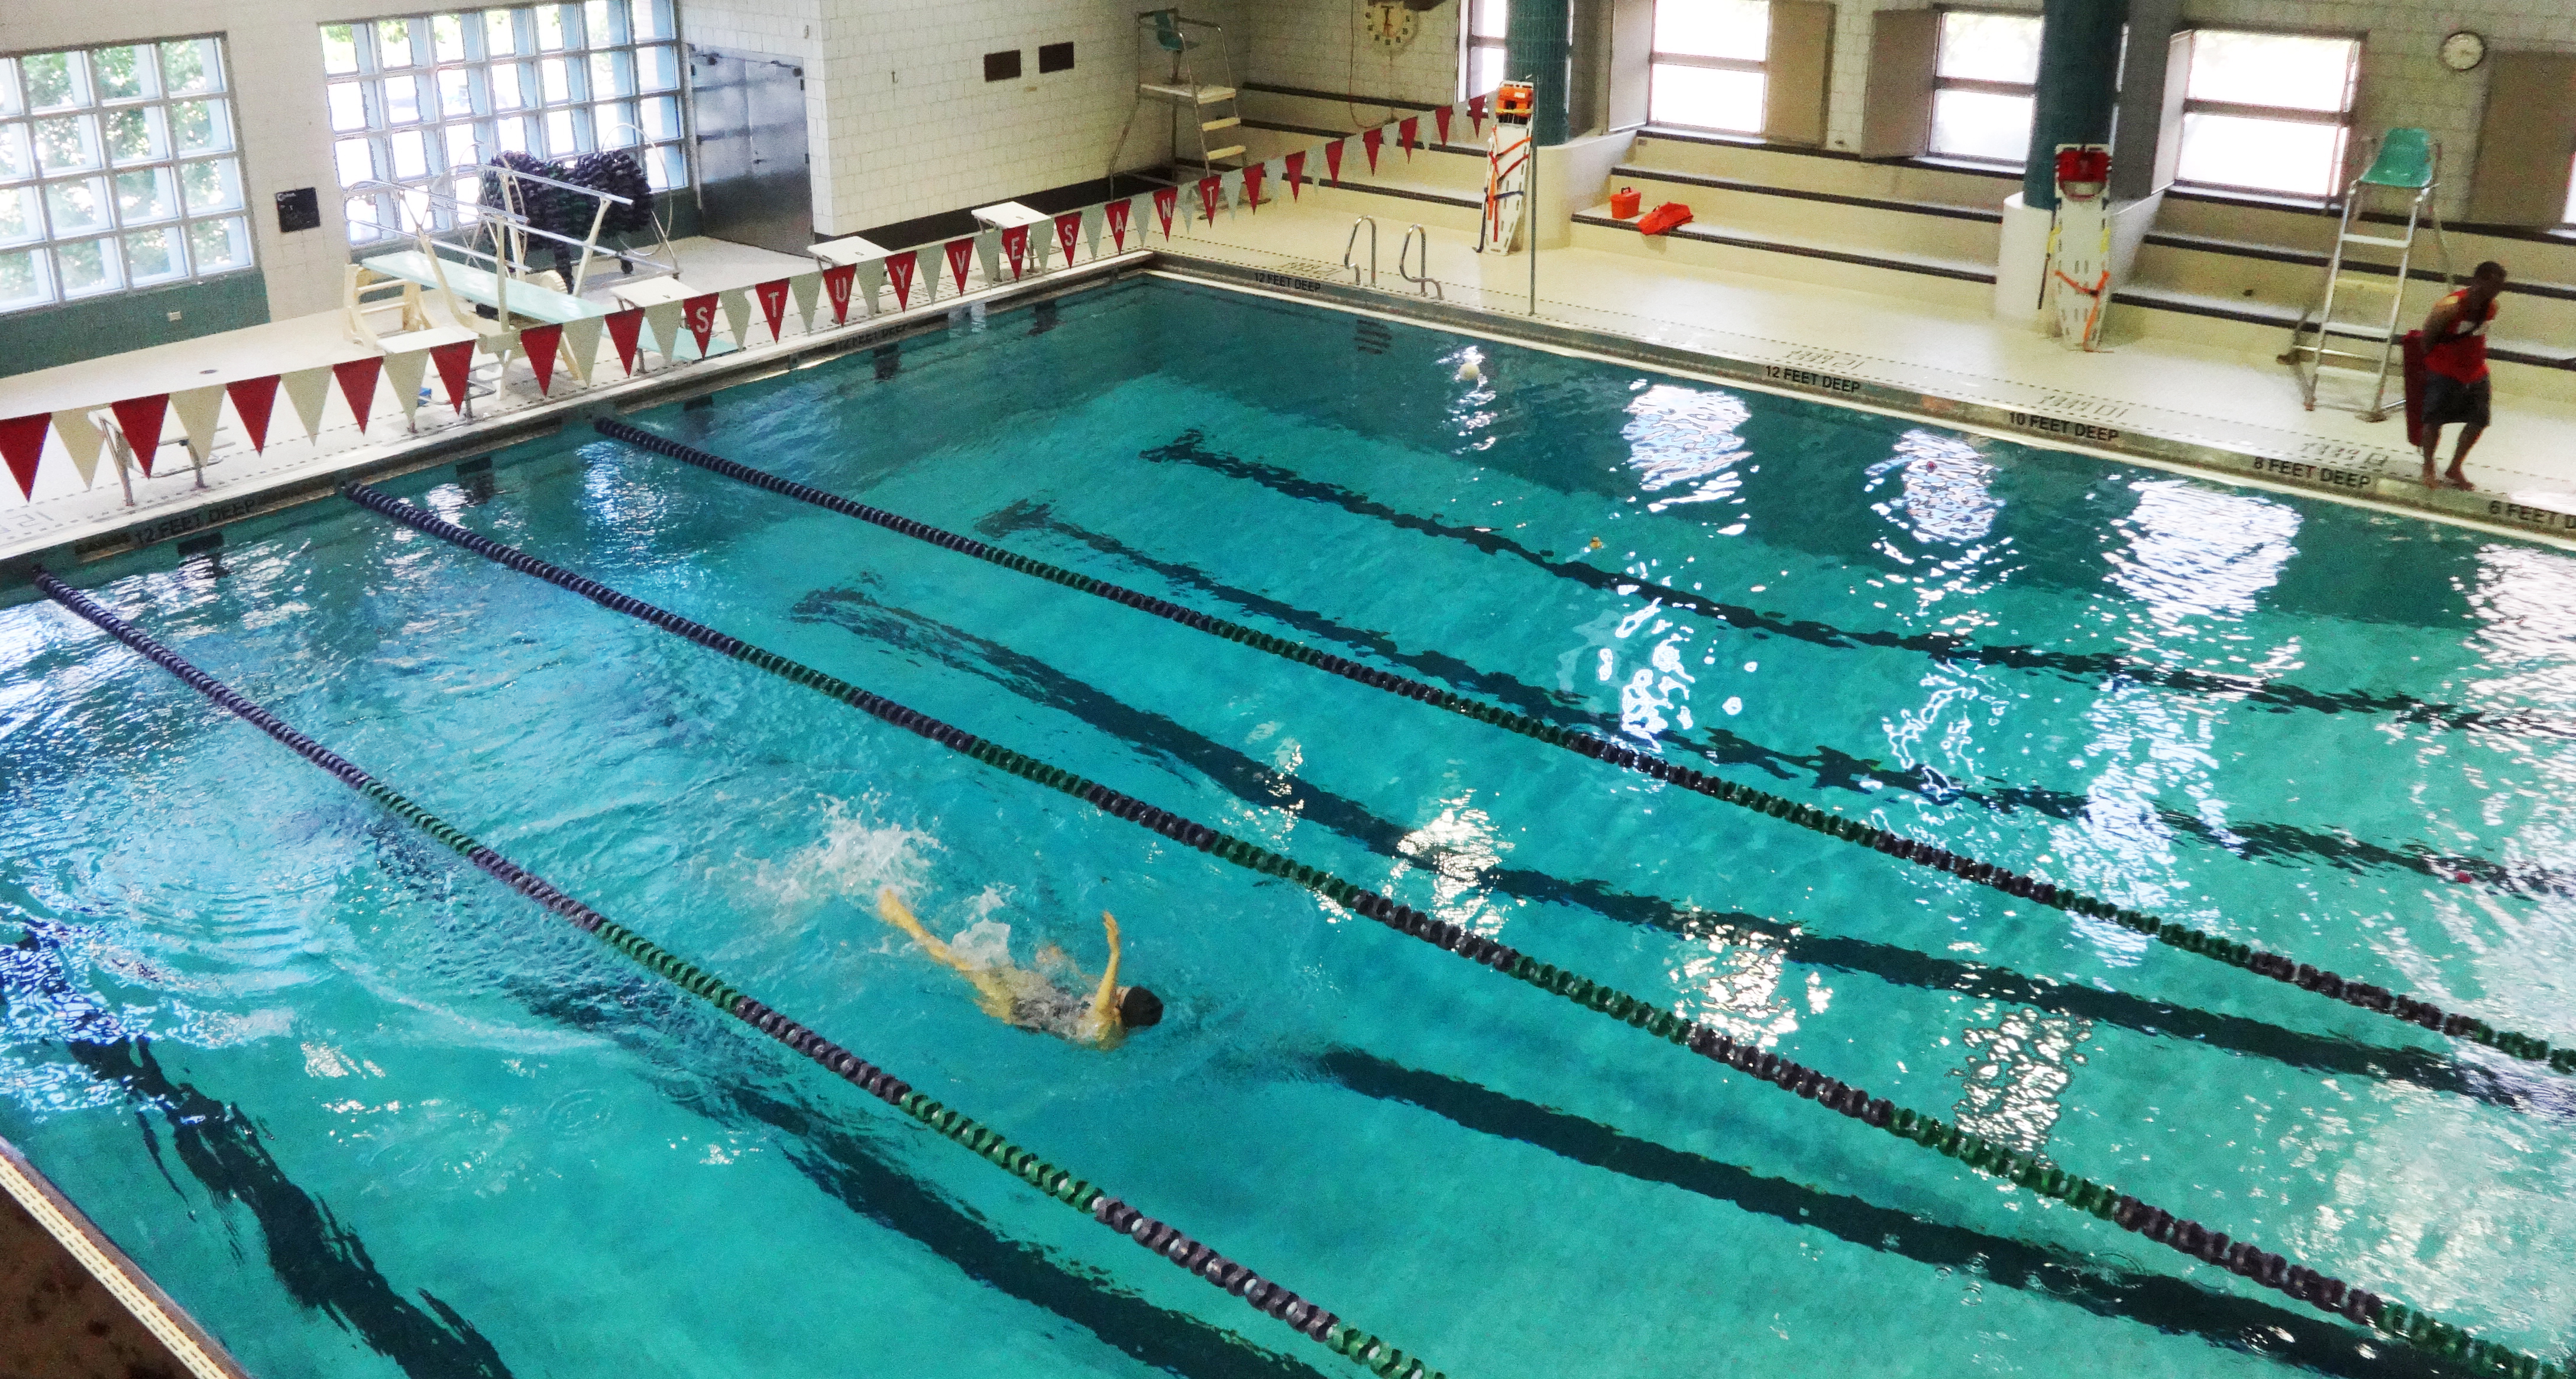 stuyvesant s pool and two basketball courts cost a month batterypark tv we inform ForStuyvesant High School Swimming Pool